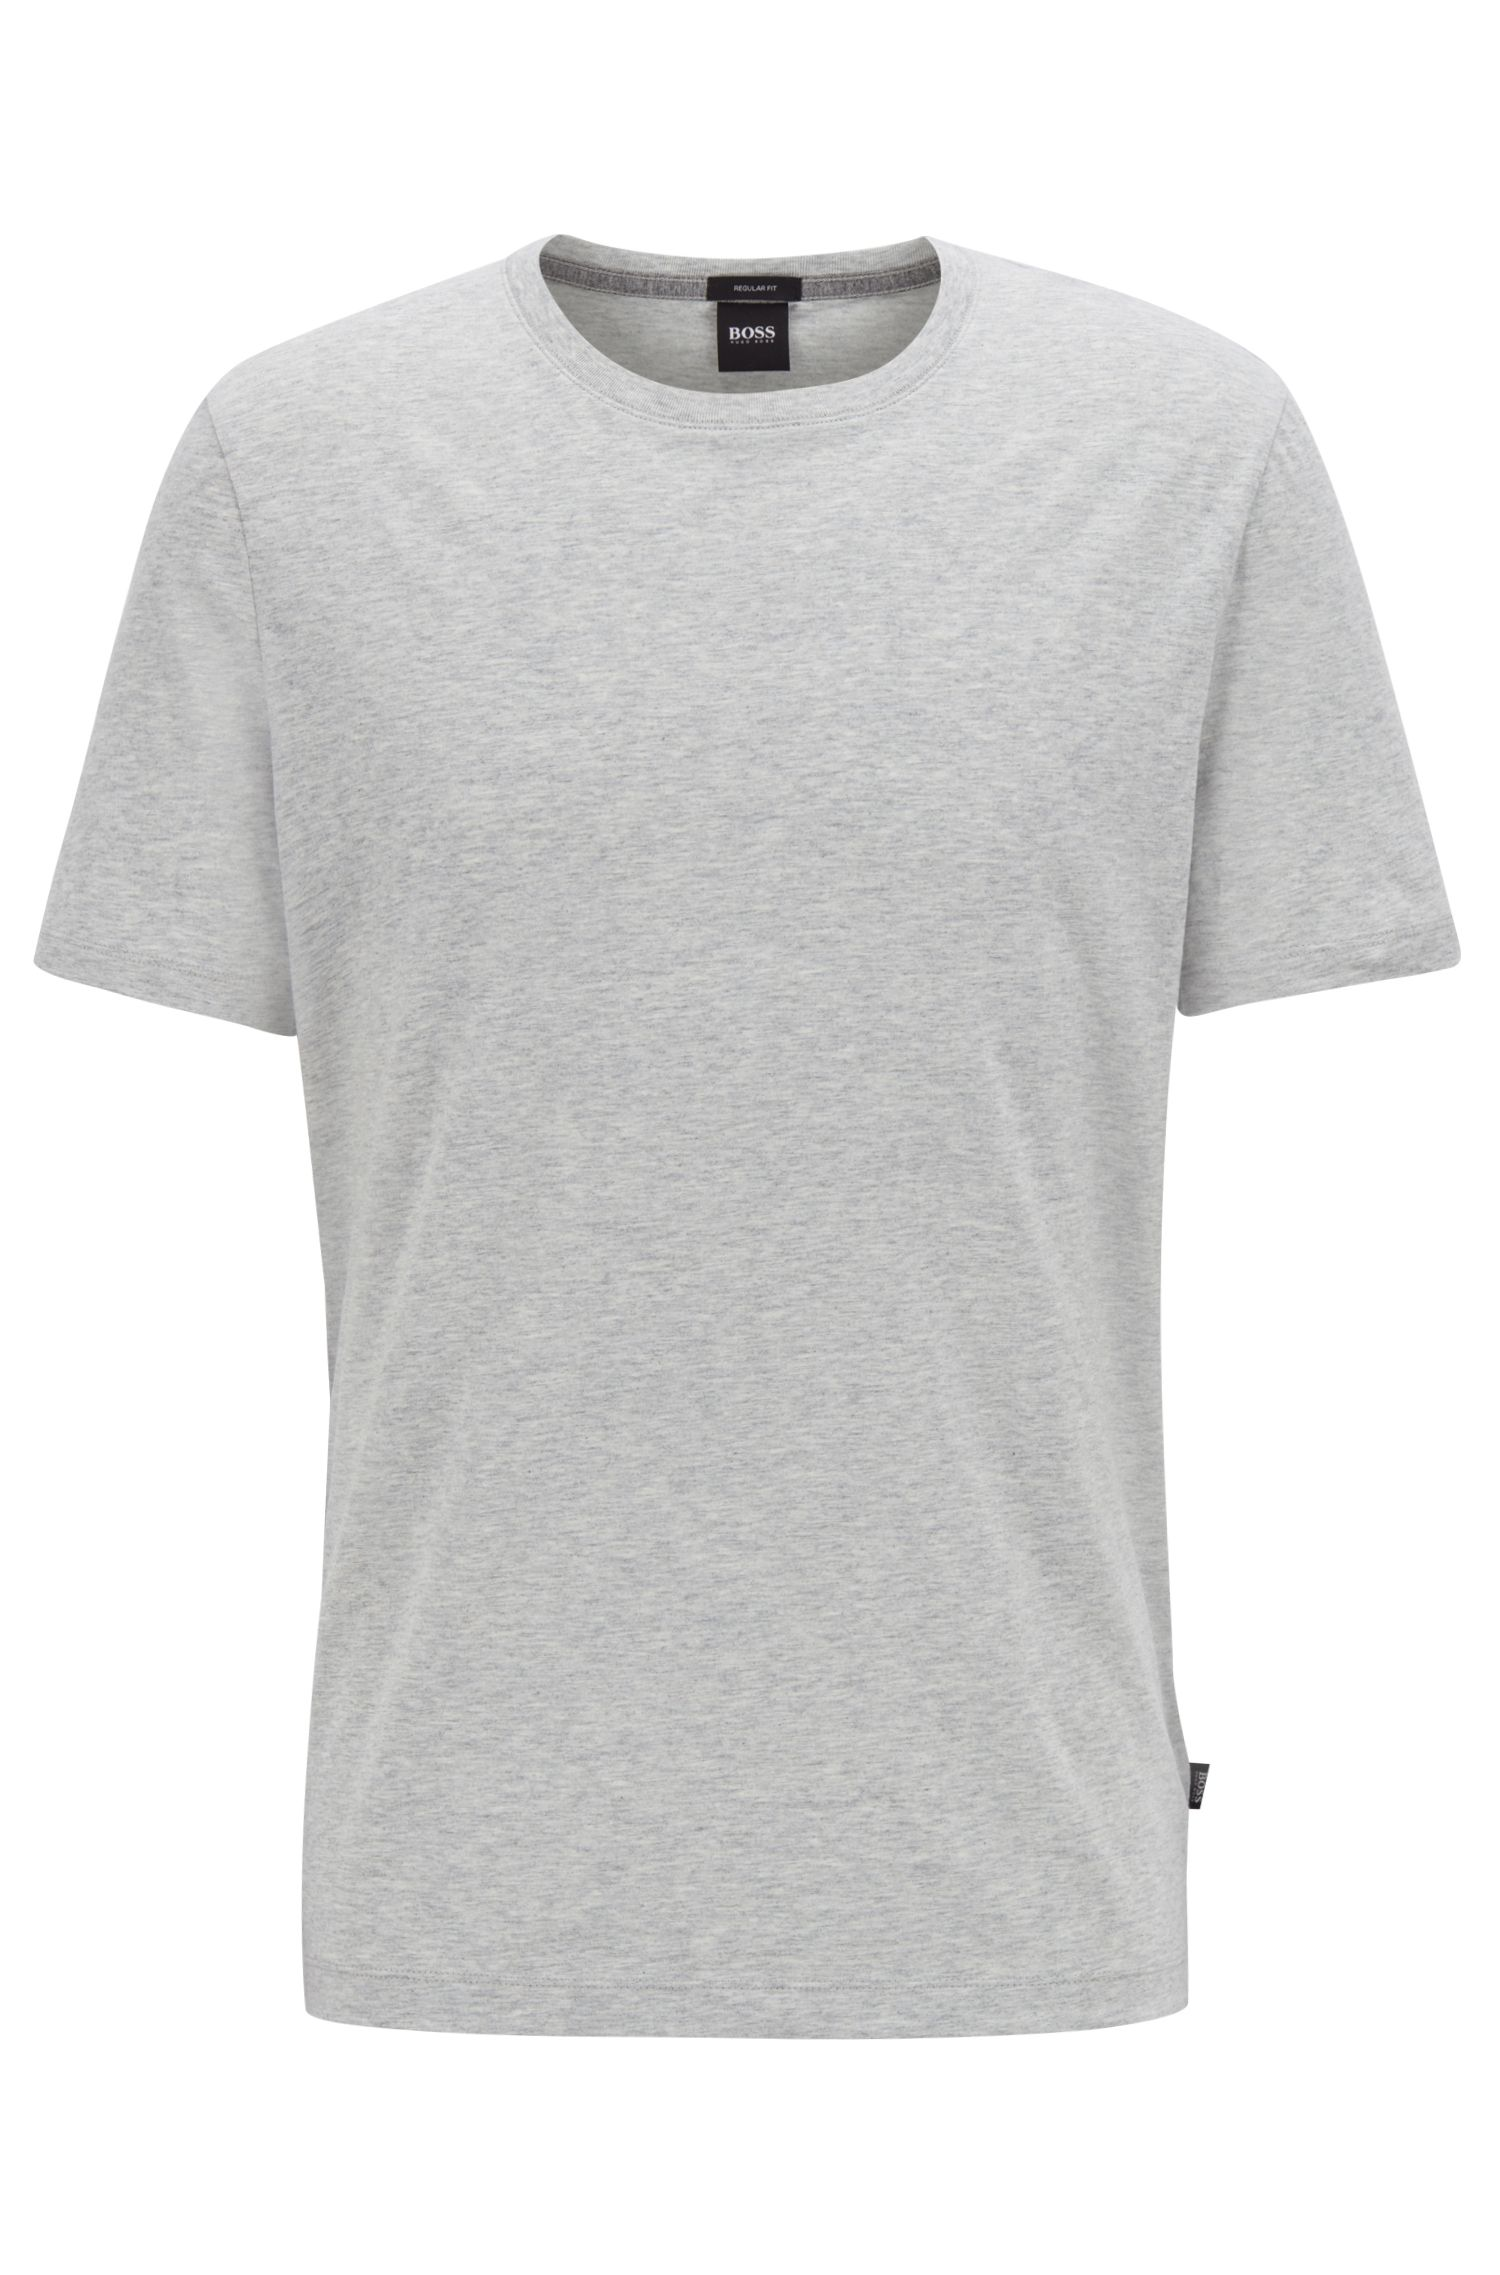 Regular-fit T-shirt in soft cotton, Open Grey